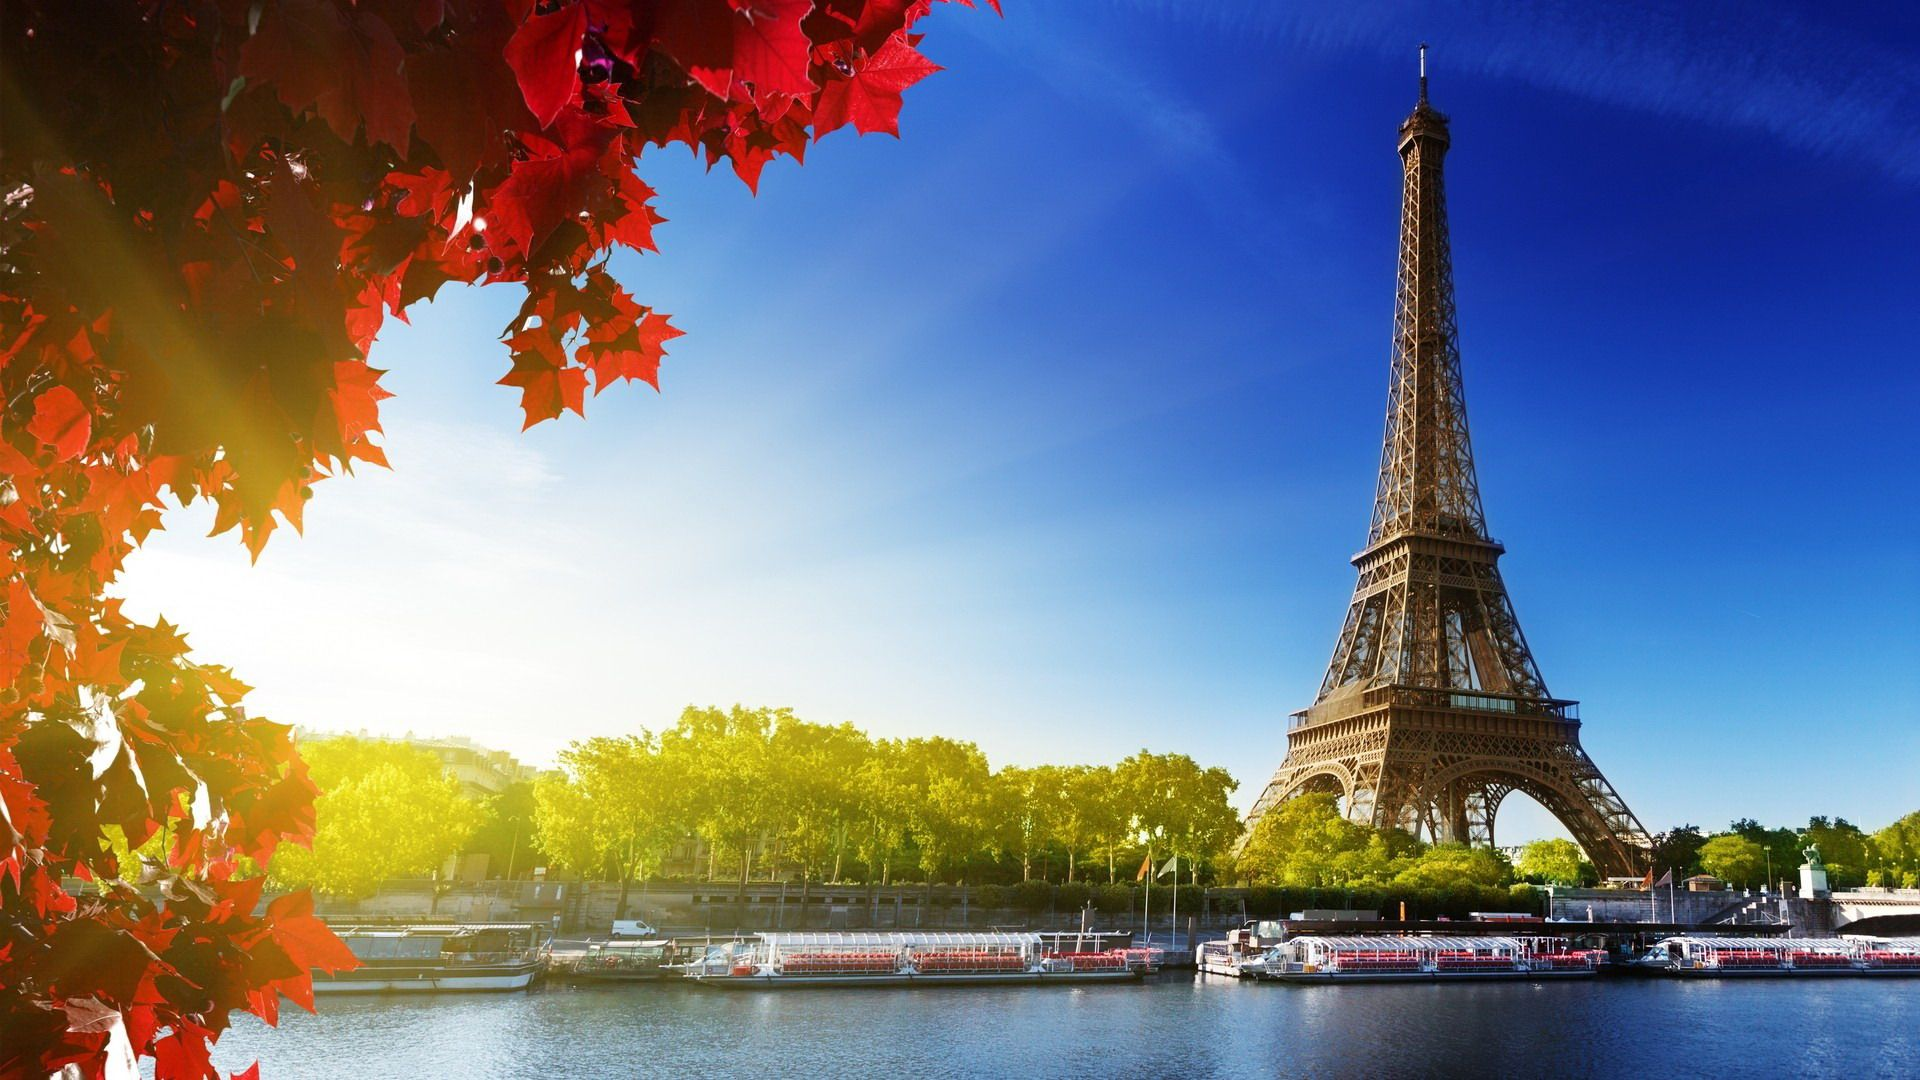 http://wallpup.com/wp-content/uploads/2013/03/Eiffel-Tower-Paris-France-Autumn-Wallpaper.jpg